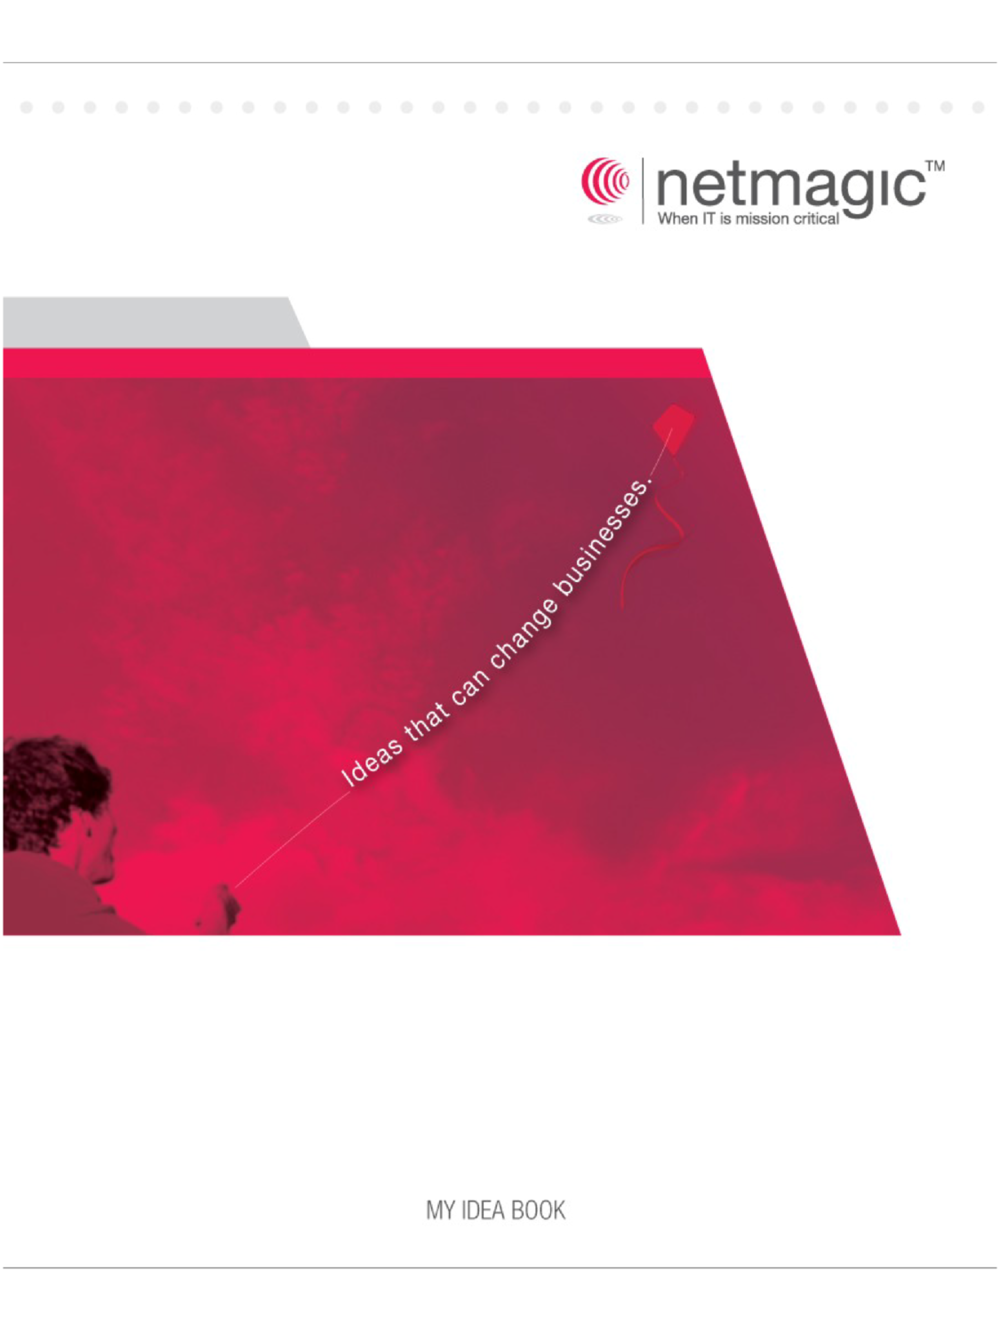 Netmagic Direct Mailer